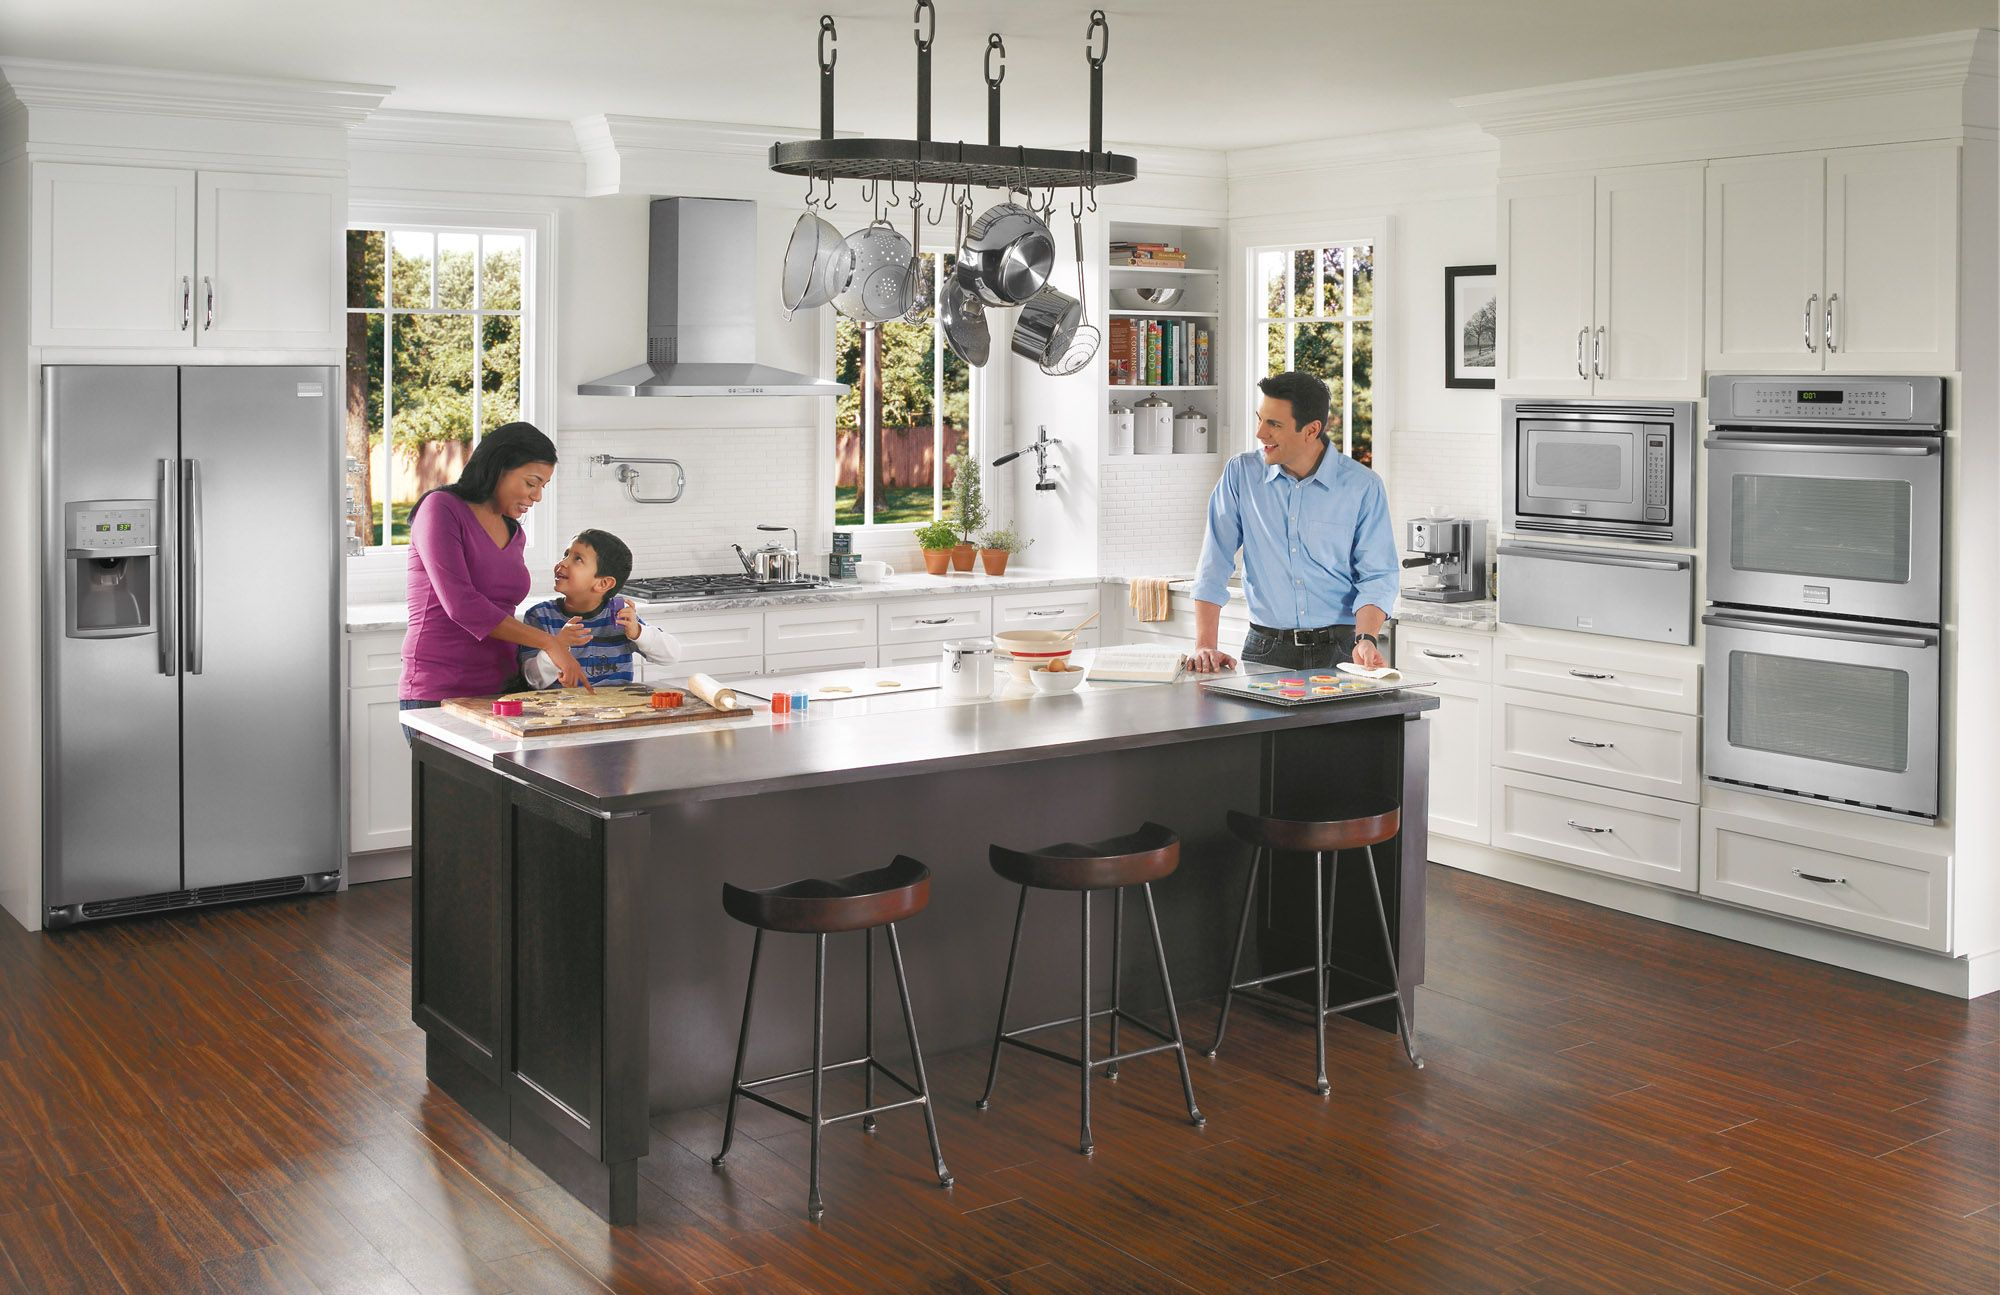 Frigidaire Pro kitchen appliances. What a beautiful space! And we ...